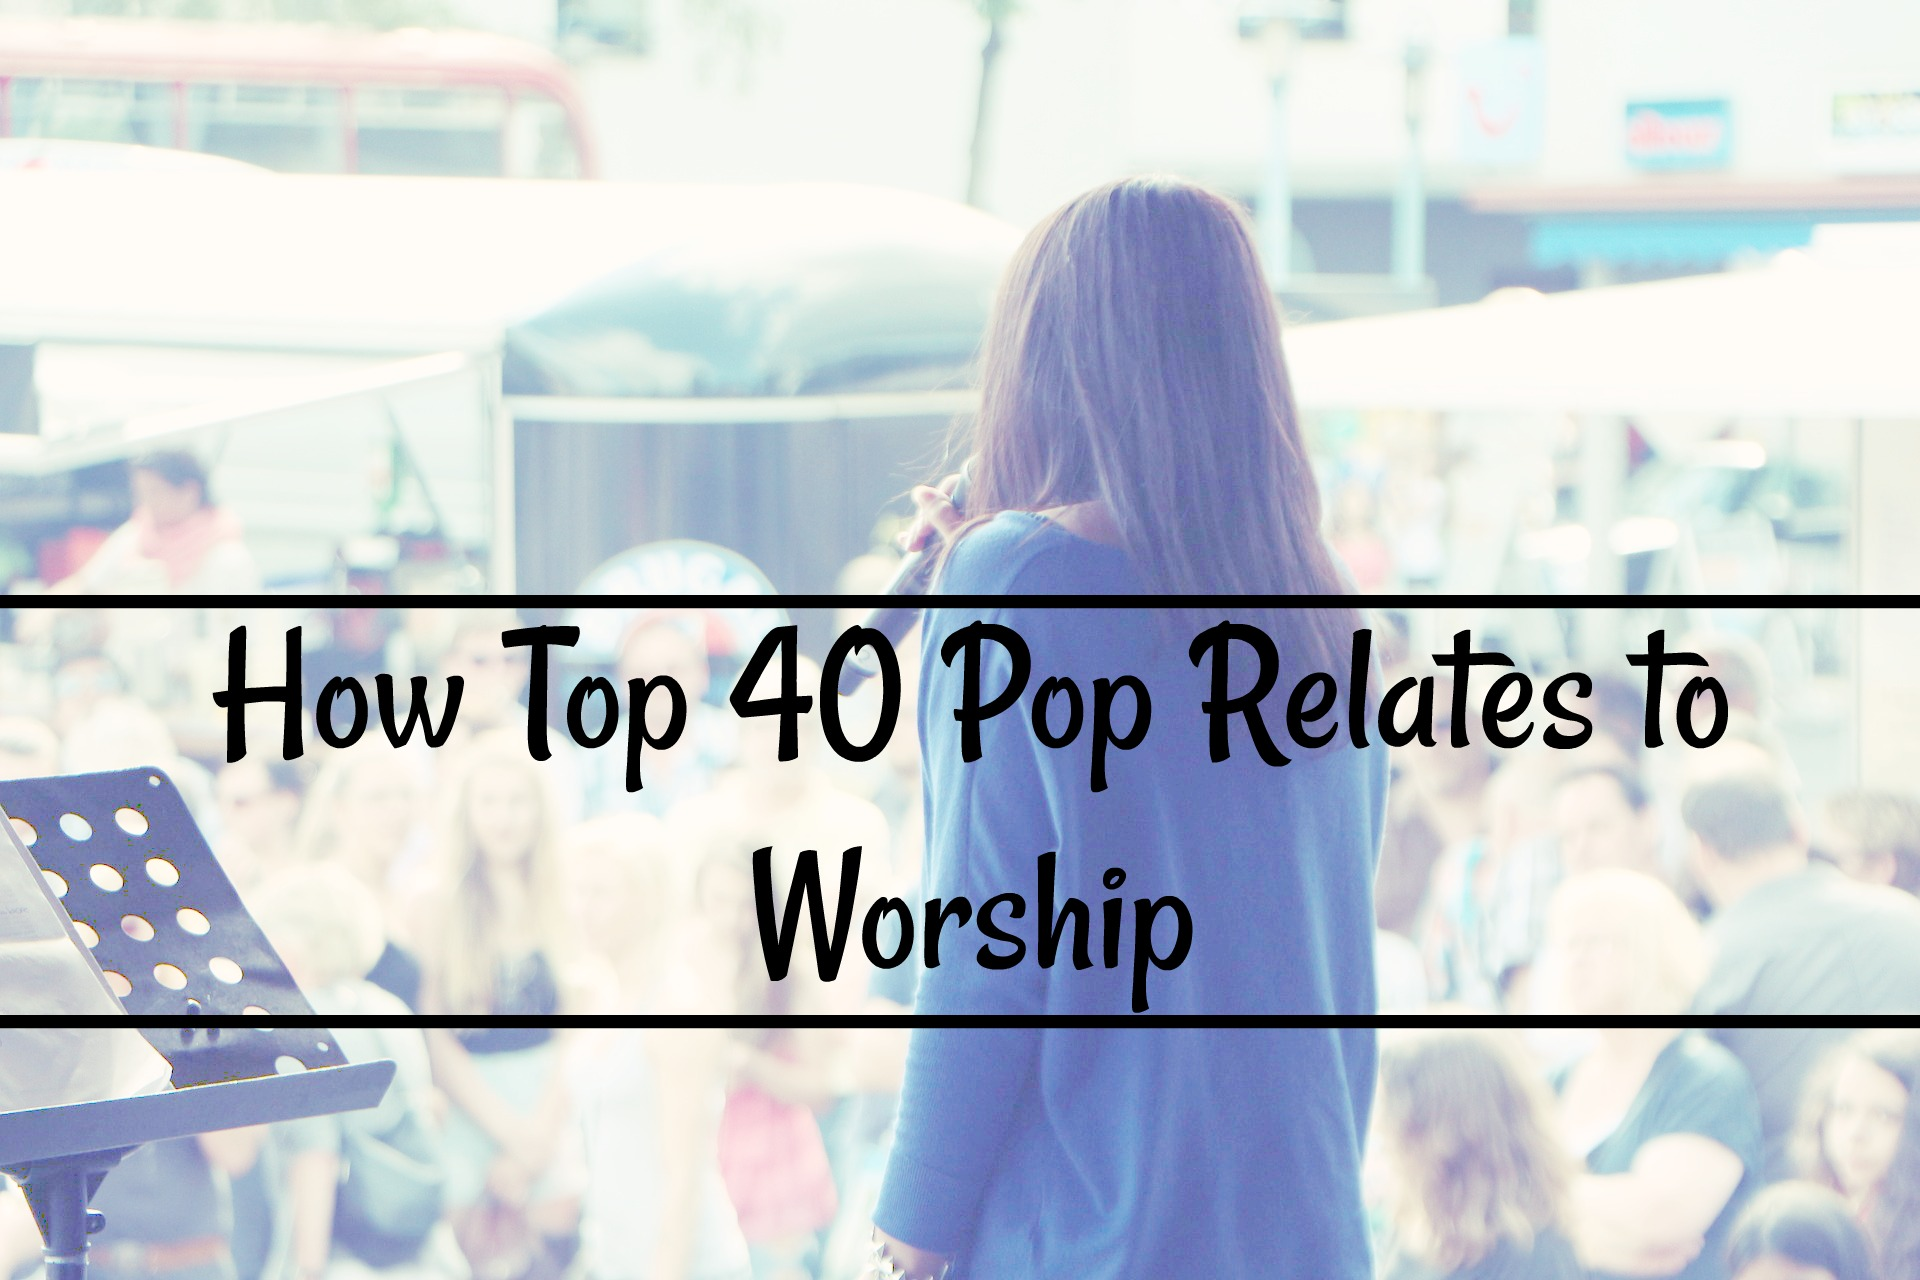 how-top-40-pop-relates-to-worship